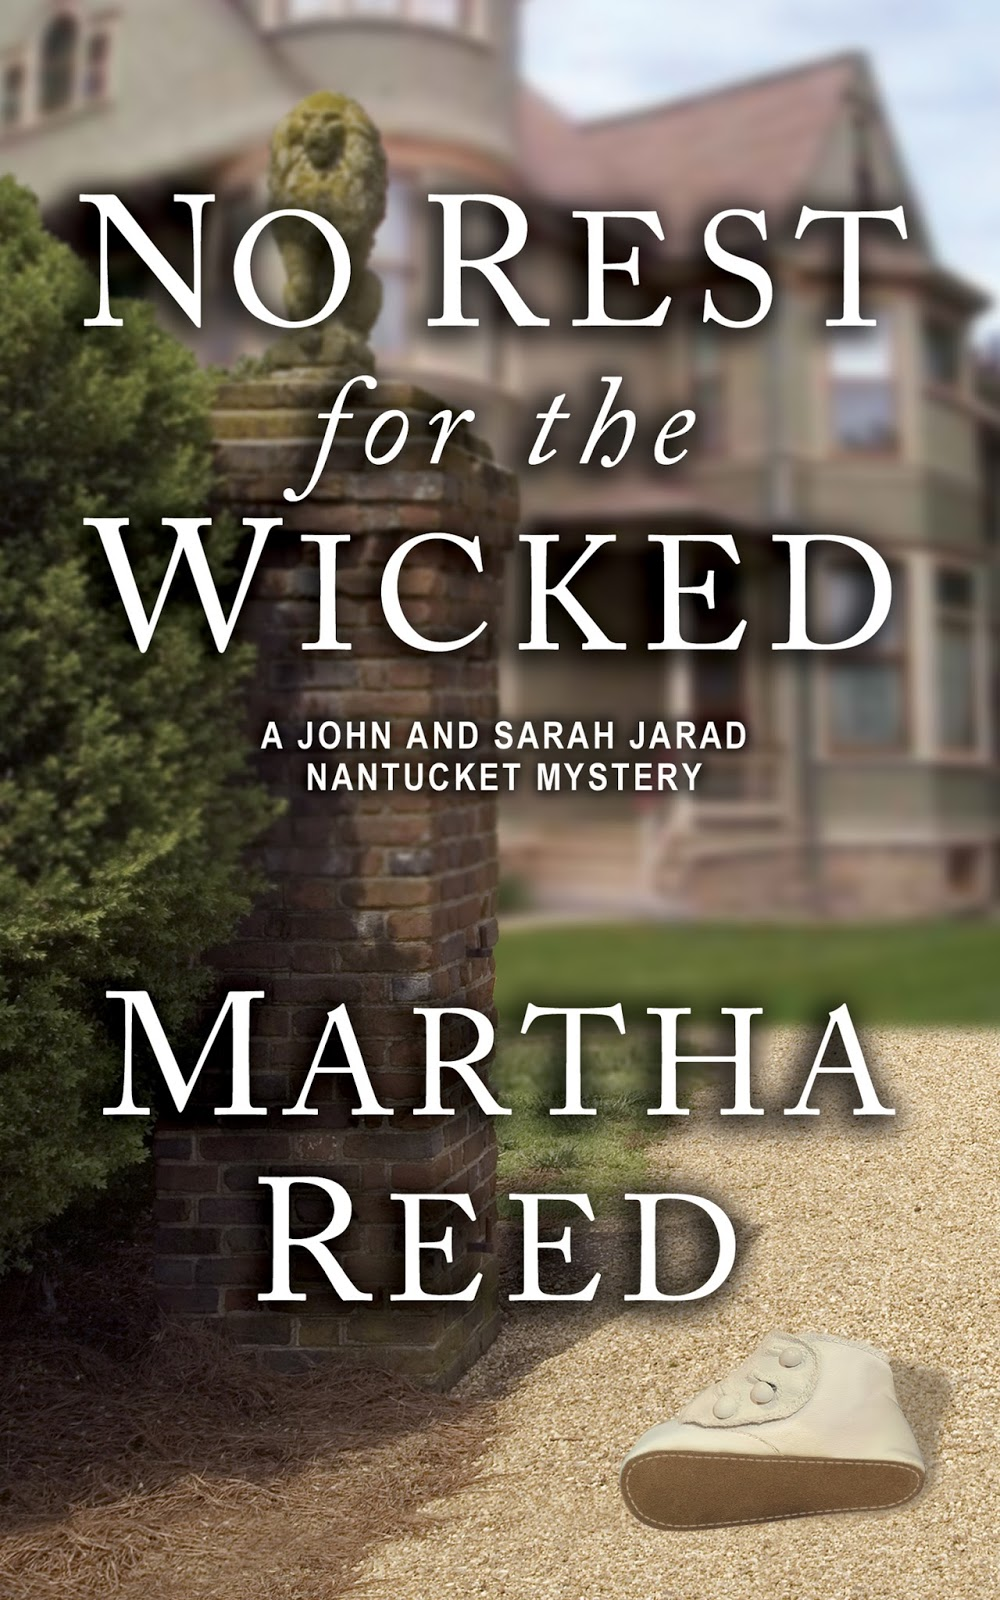 Martha Reed Is The Author Of The Awardwinning John And Sarah Jarad  Nantucket Mystery Series Book One, The Choking Game, Was A 2015 Killer  Nashville Silver